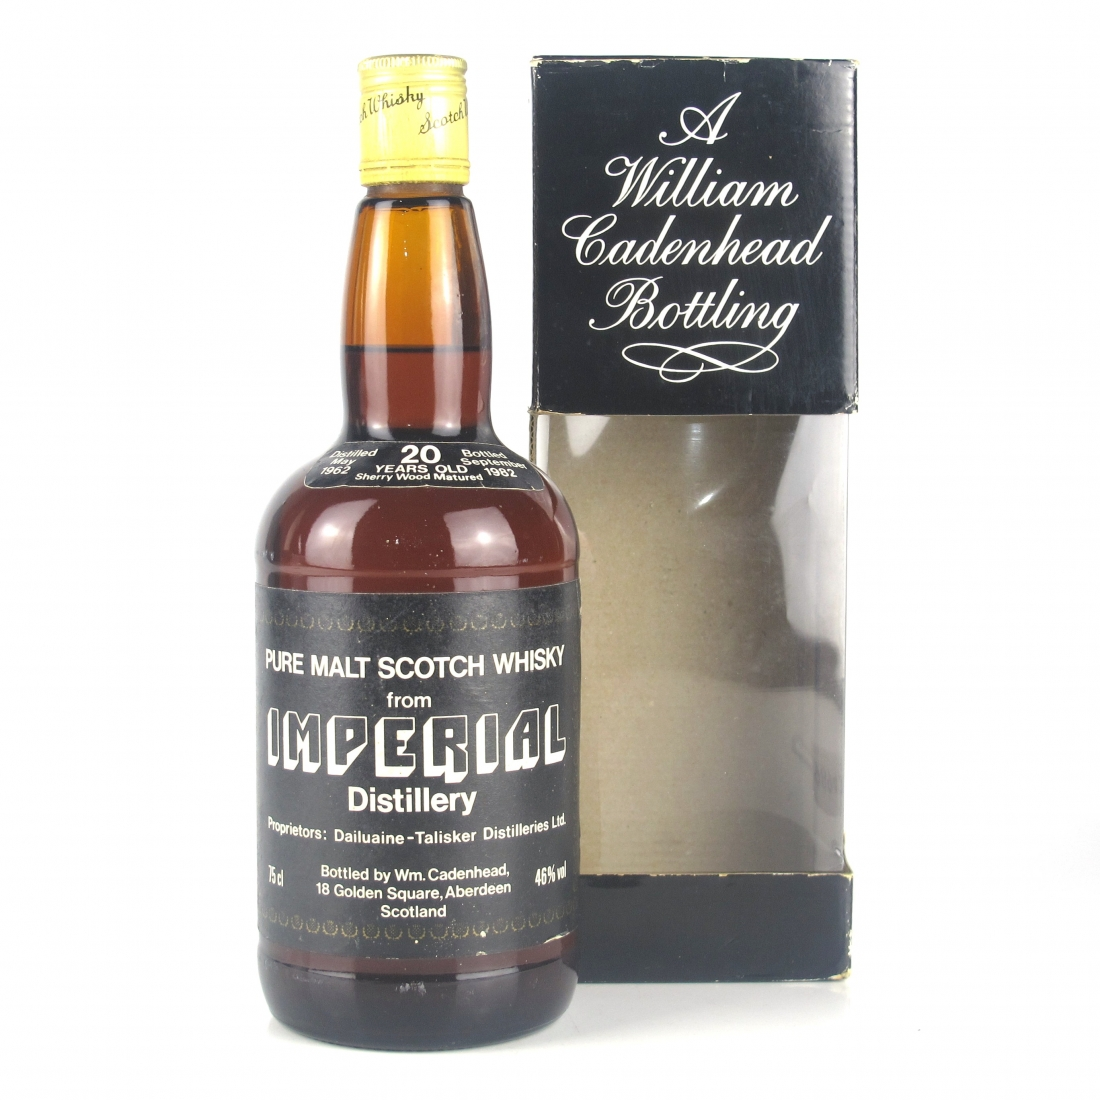 Imperial 1962 Cadenhead's 20 Year Old / Sherry Wood Matured